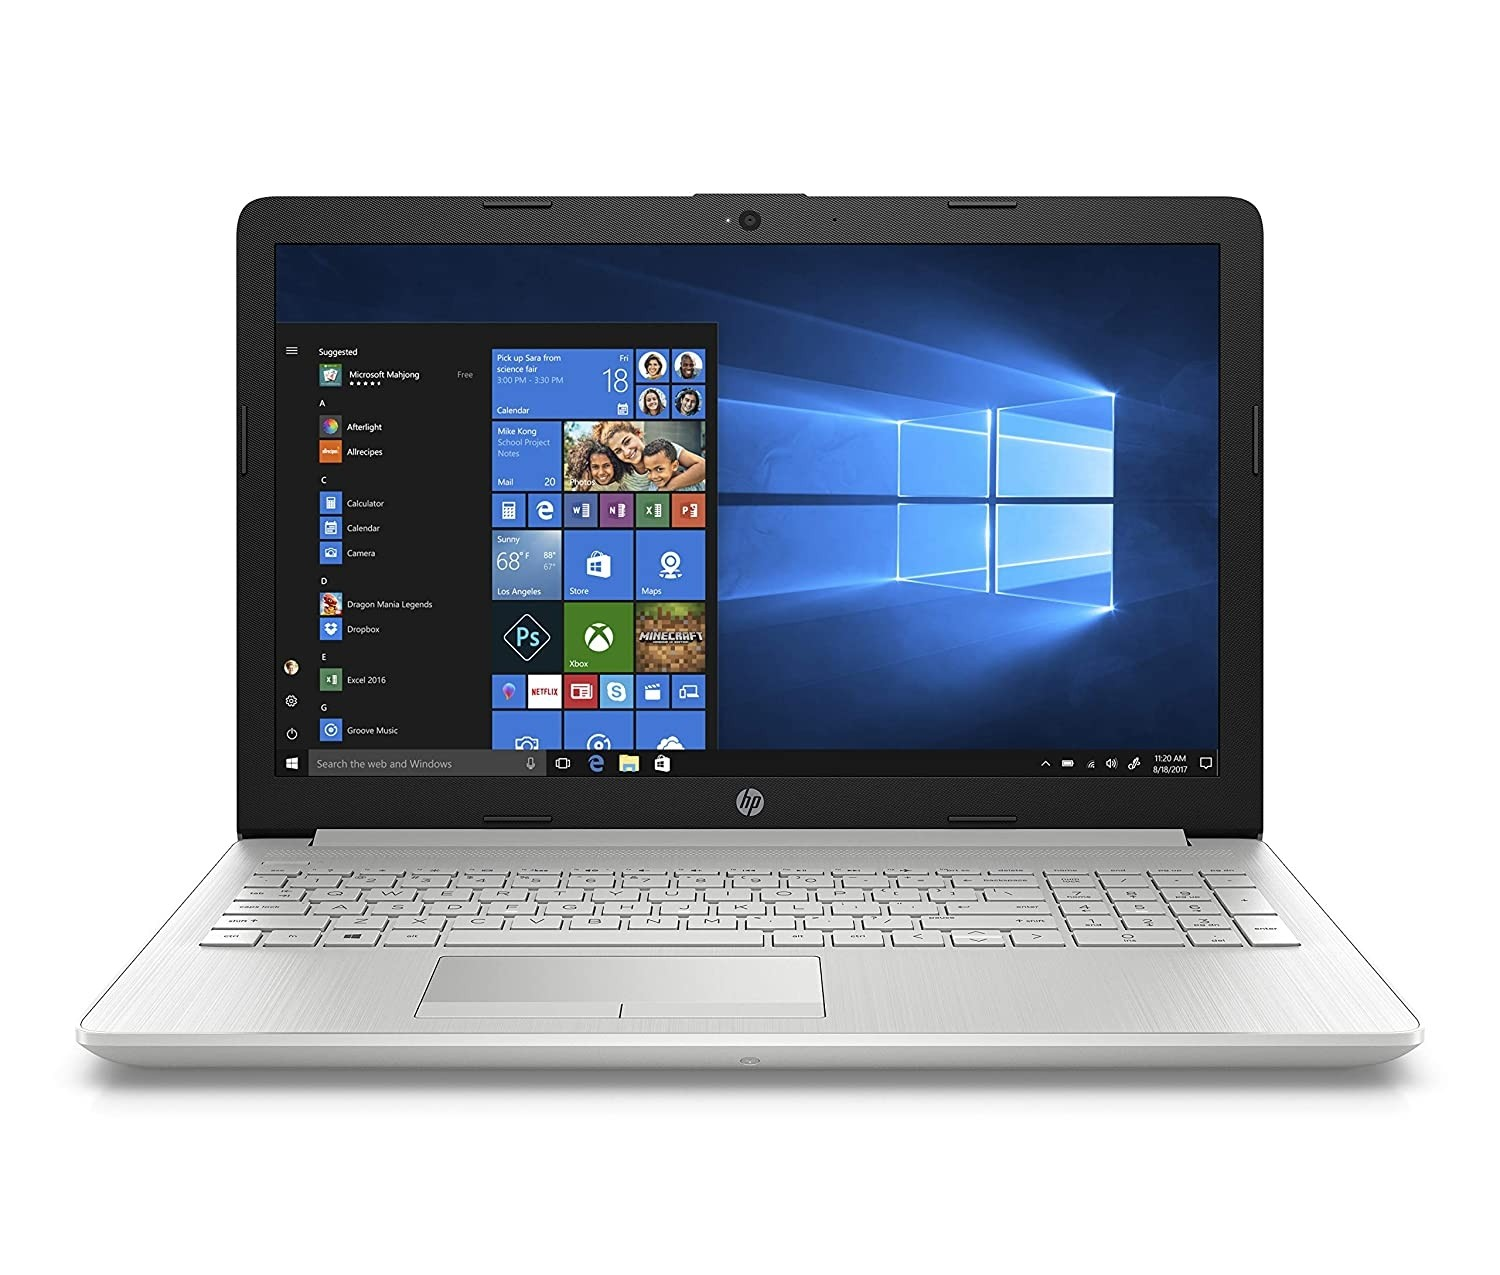 Refurbished laptops & desktops - HP 15 Dr0006Tx 2018 15.6-Inch Laptop (8TH GEN I5-8250U/8GB/1TB/Windows 10 Home/2GB Nvidia Geforce Mx110 Graphics), Natural Silver